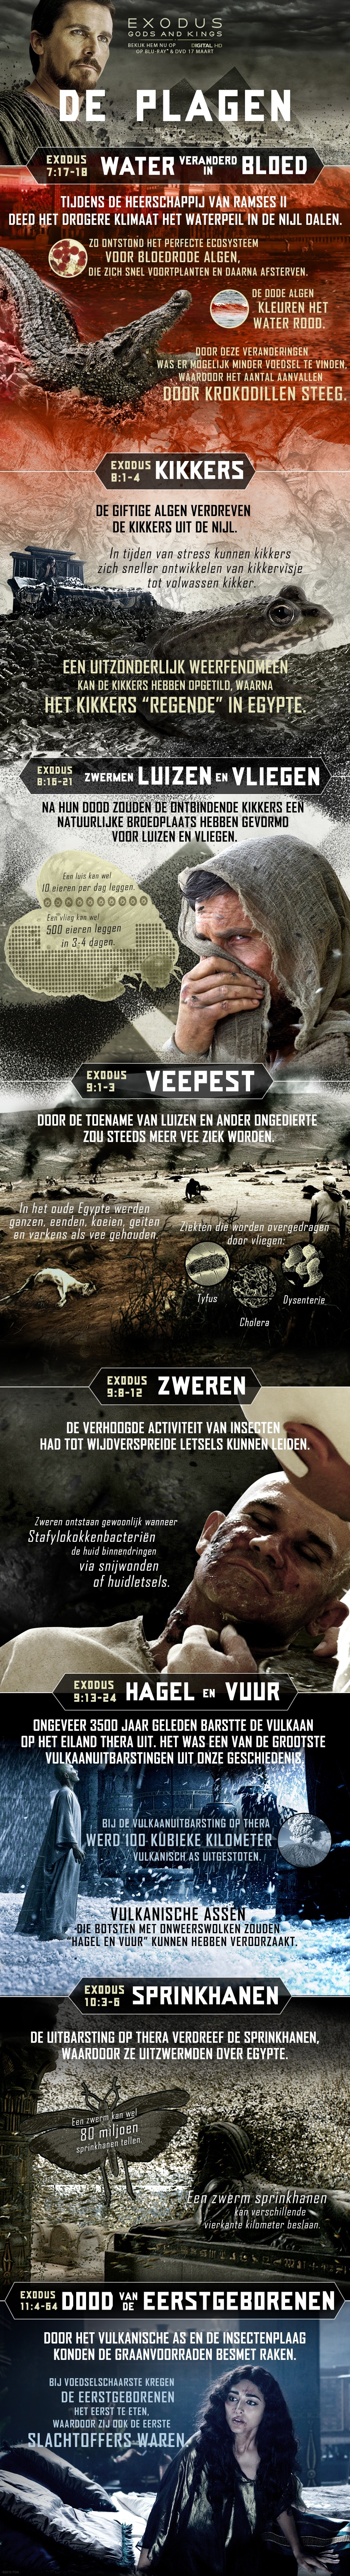 Infographic: De Plagen Van Exodus Gods And Kings